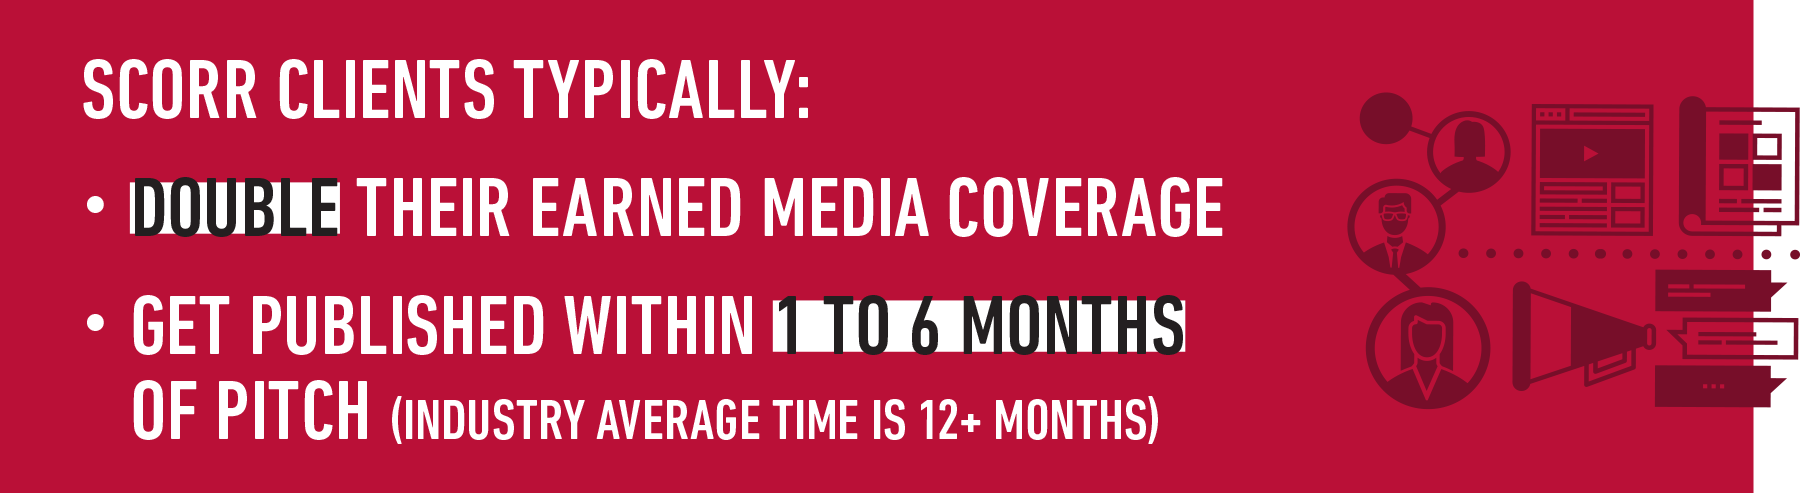 Scorr clients typically double their earned media coverage and get published within 1 to 6 months of pitch (industry average time is 12+ months)